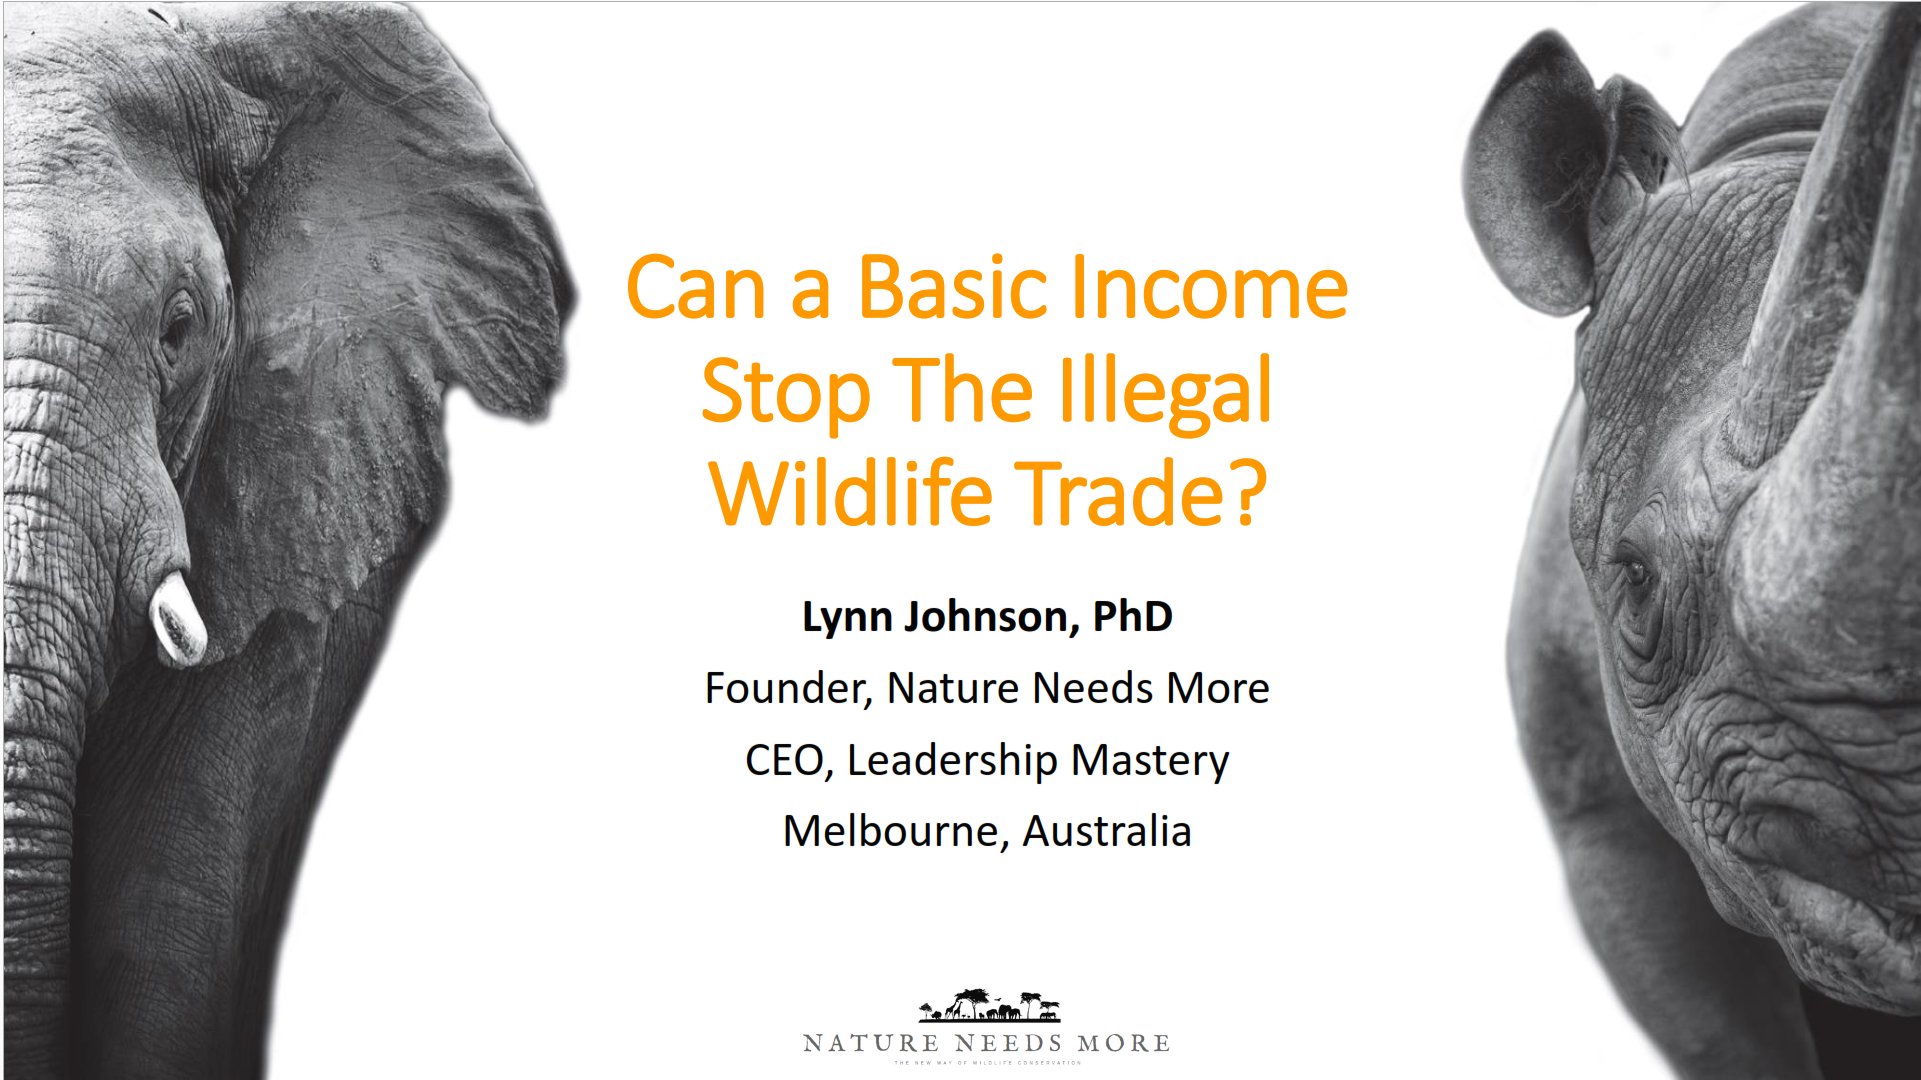 Can A Basic Income Stop The Illegal Wildlife Trade?